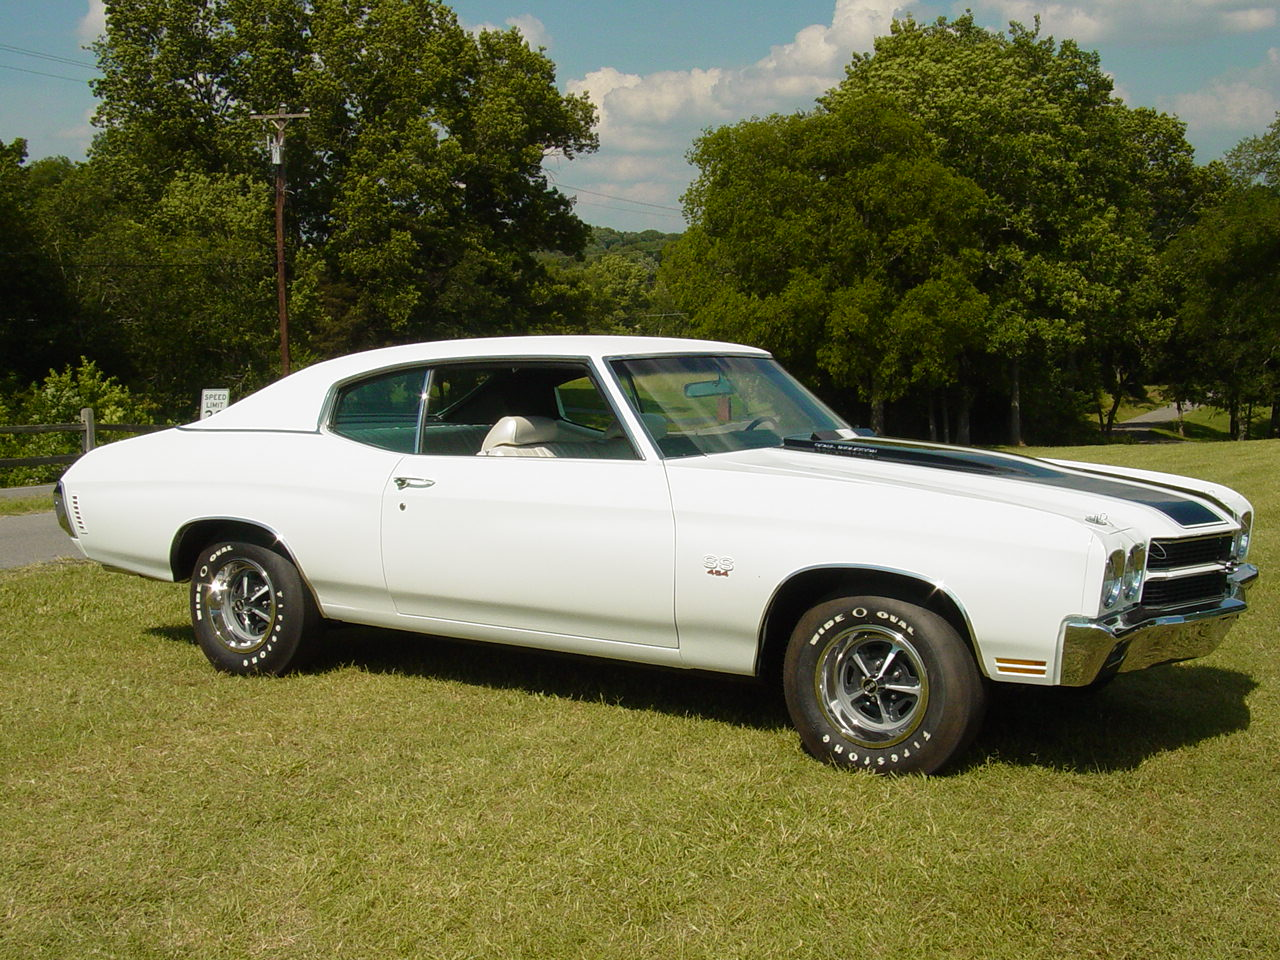 The LS6 engine made Chevelle a